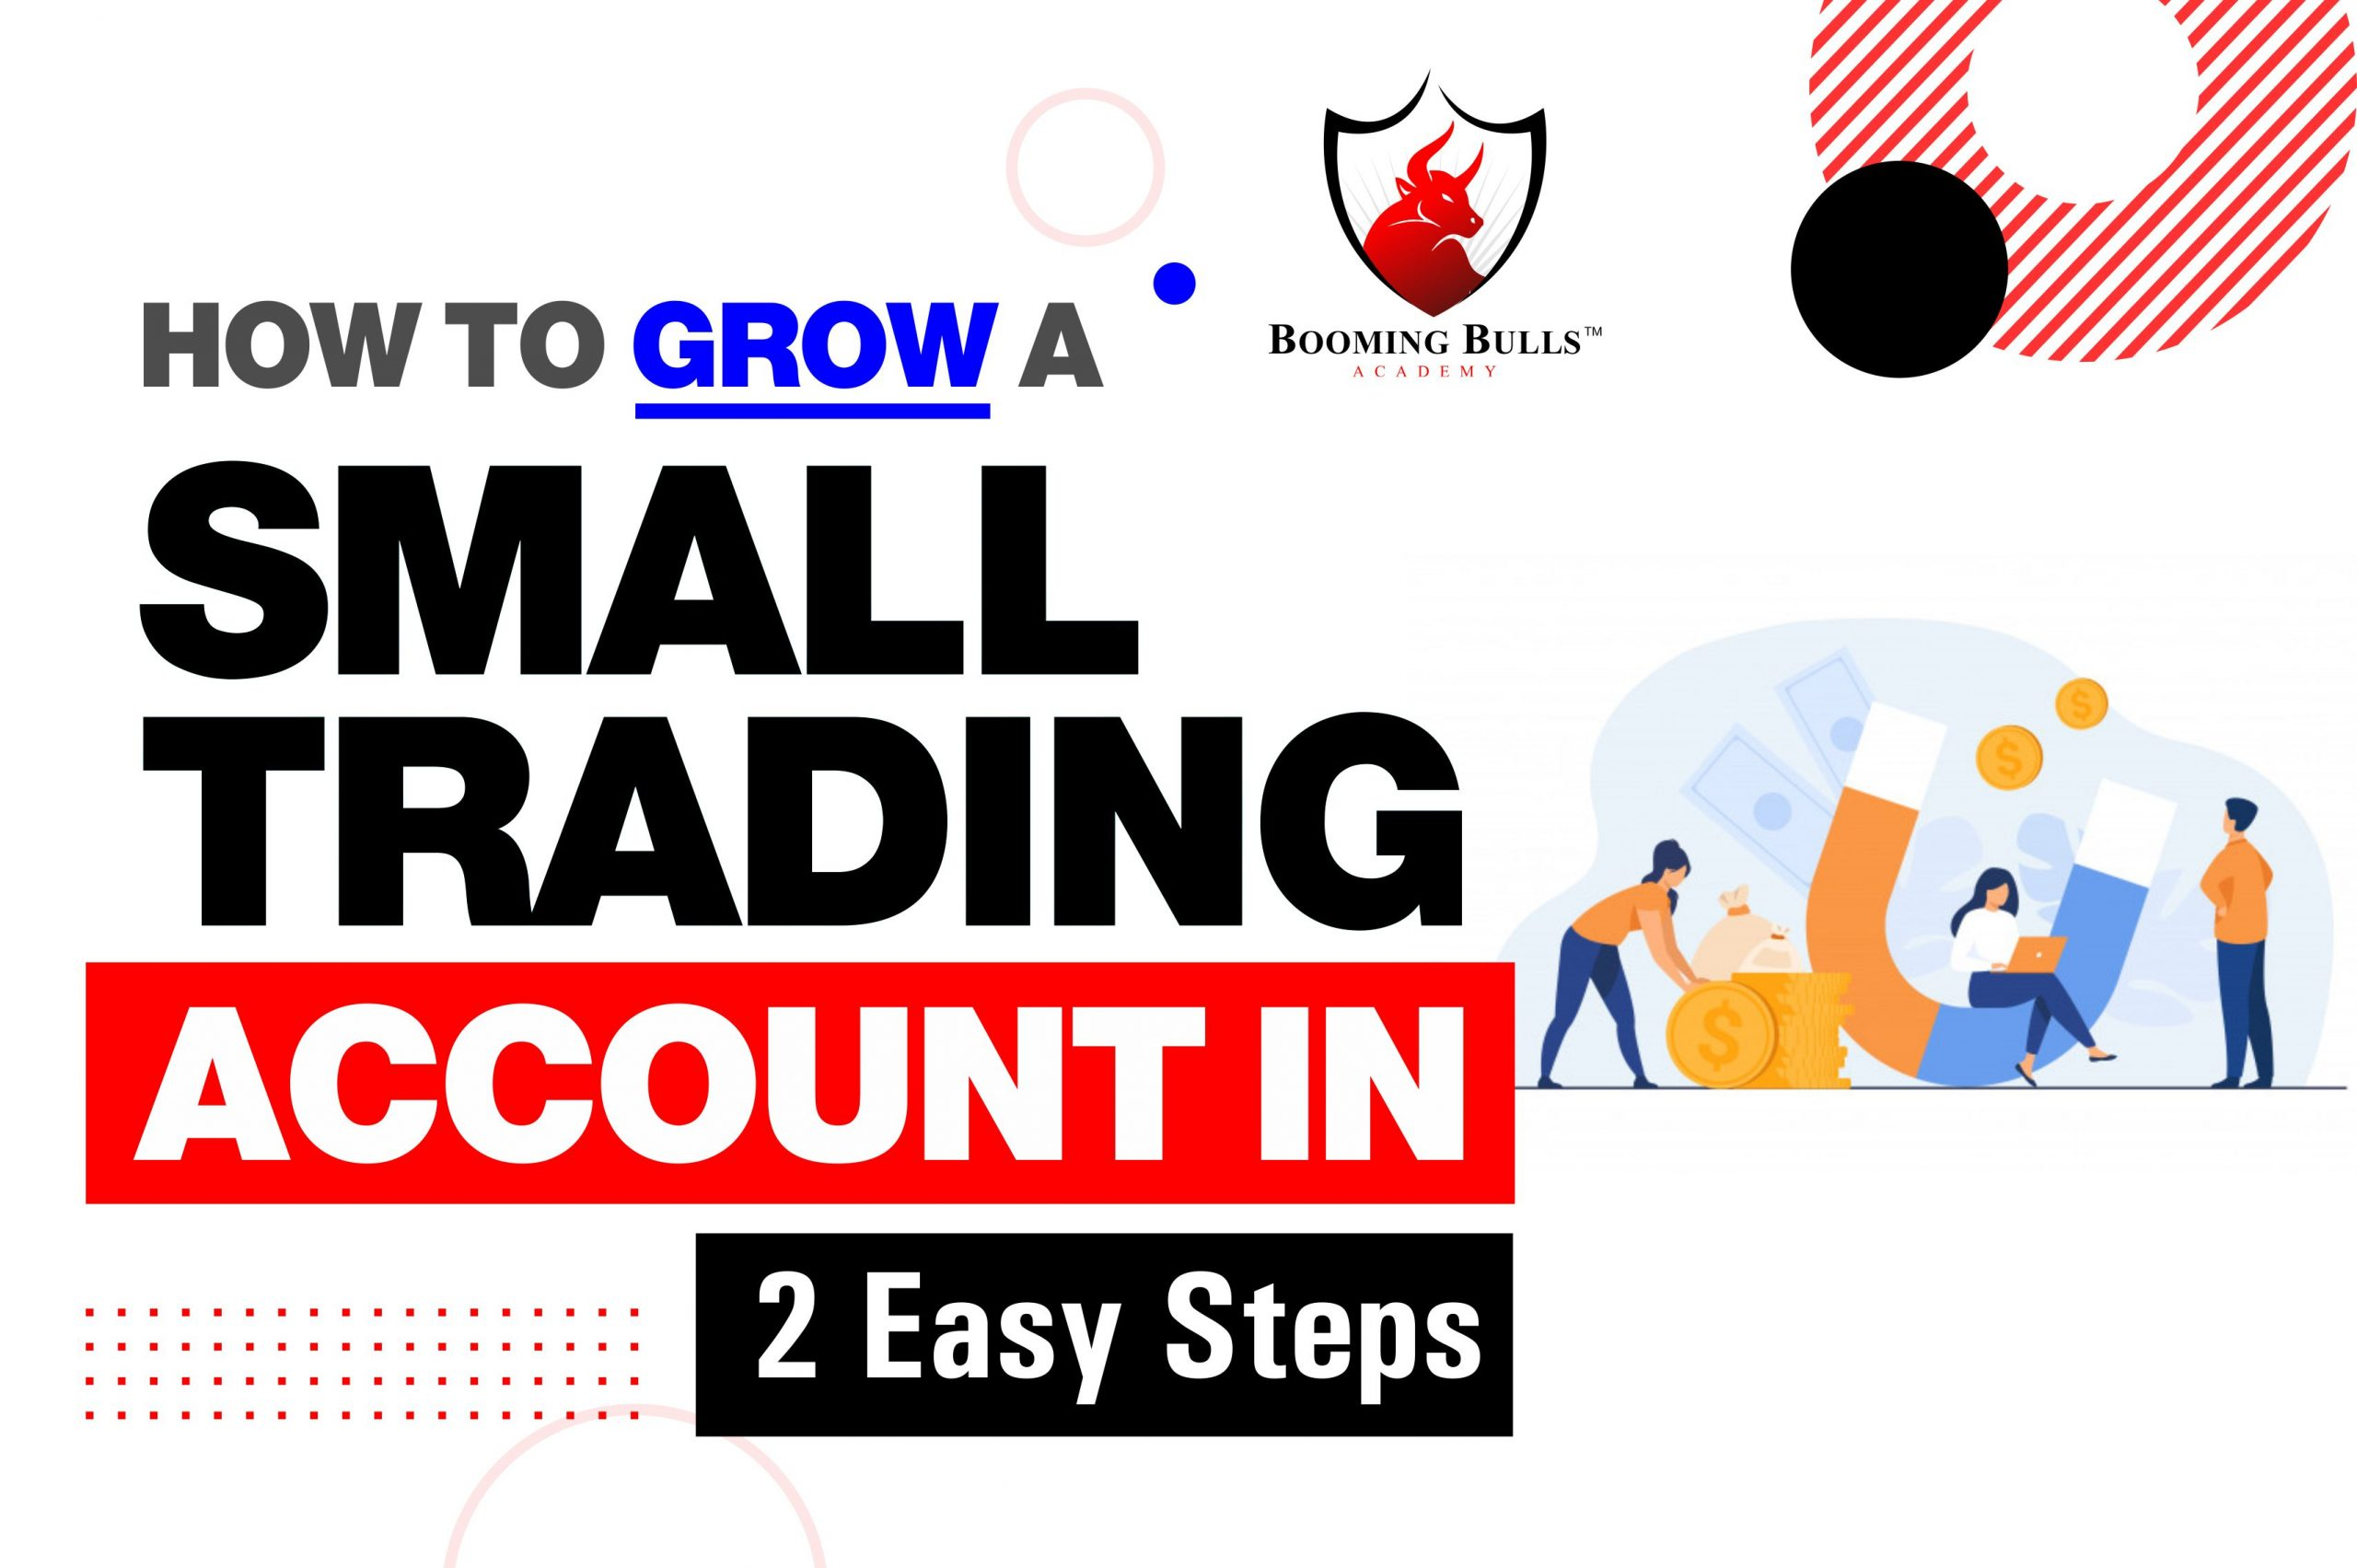 How to Grow a Small Trading Account in 2 Easy Steps